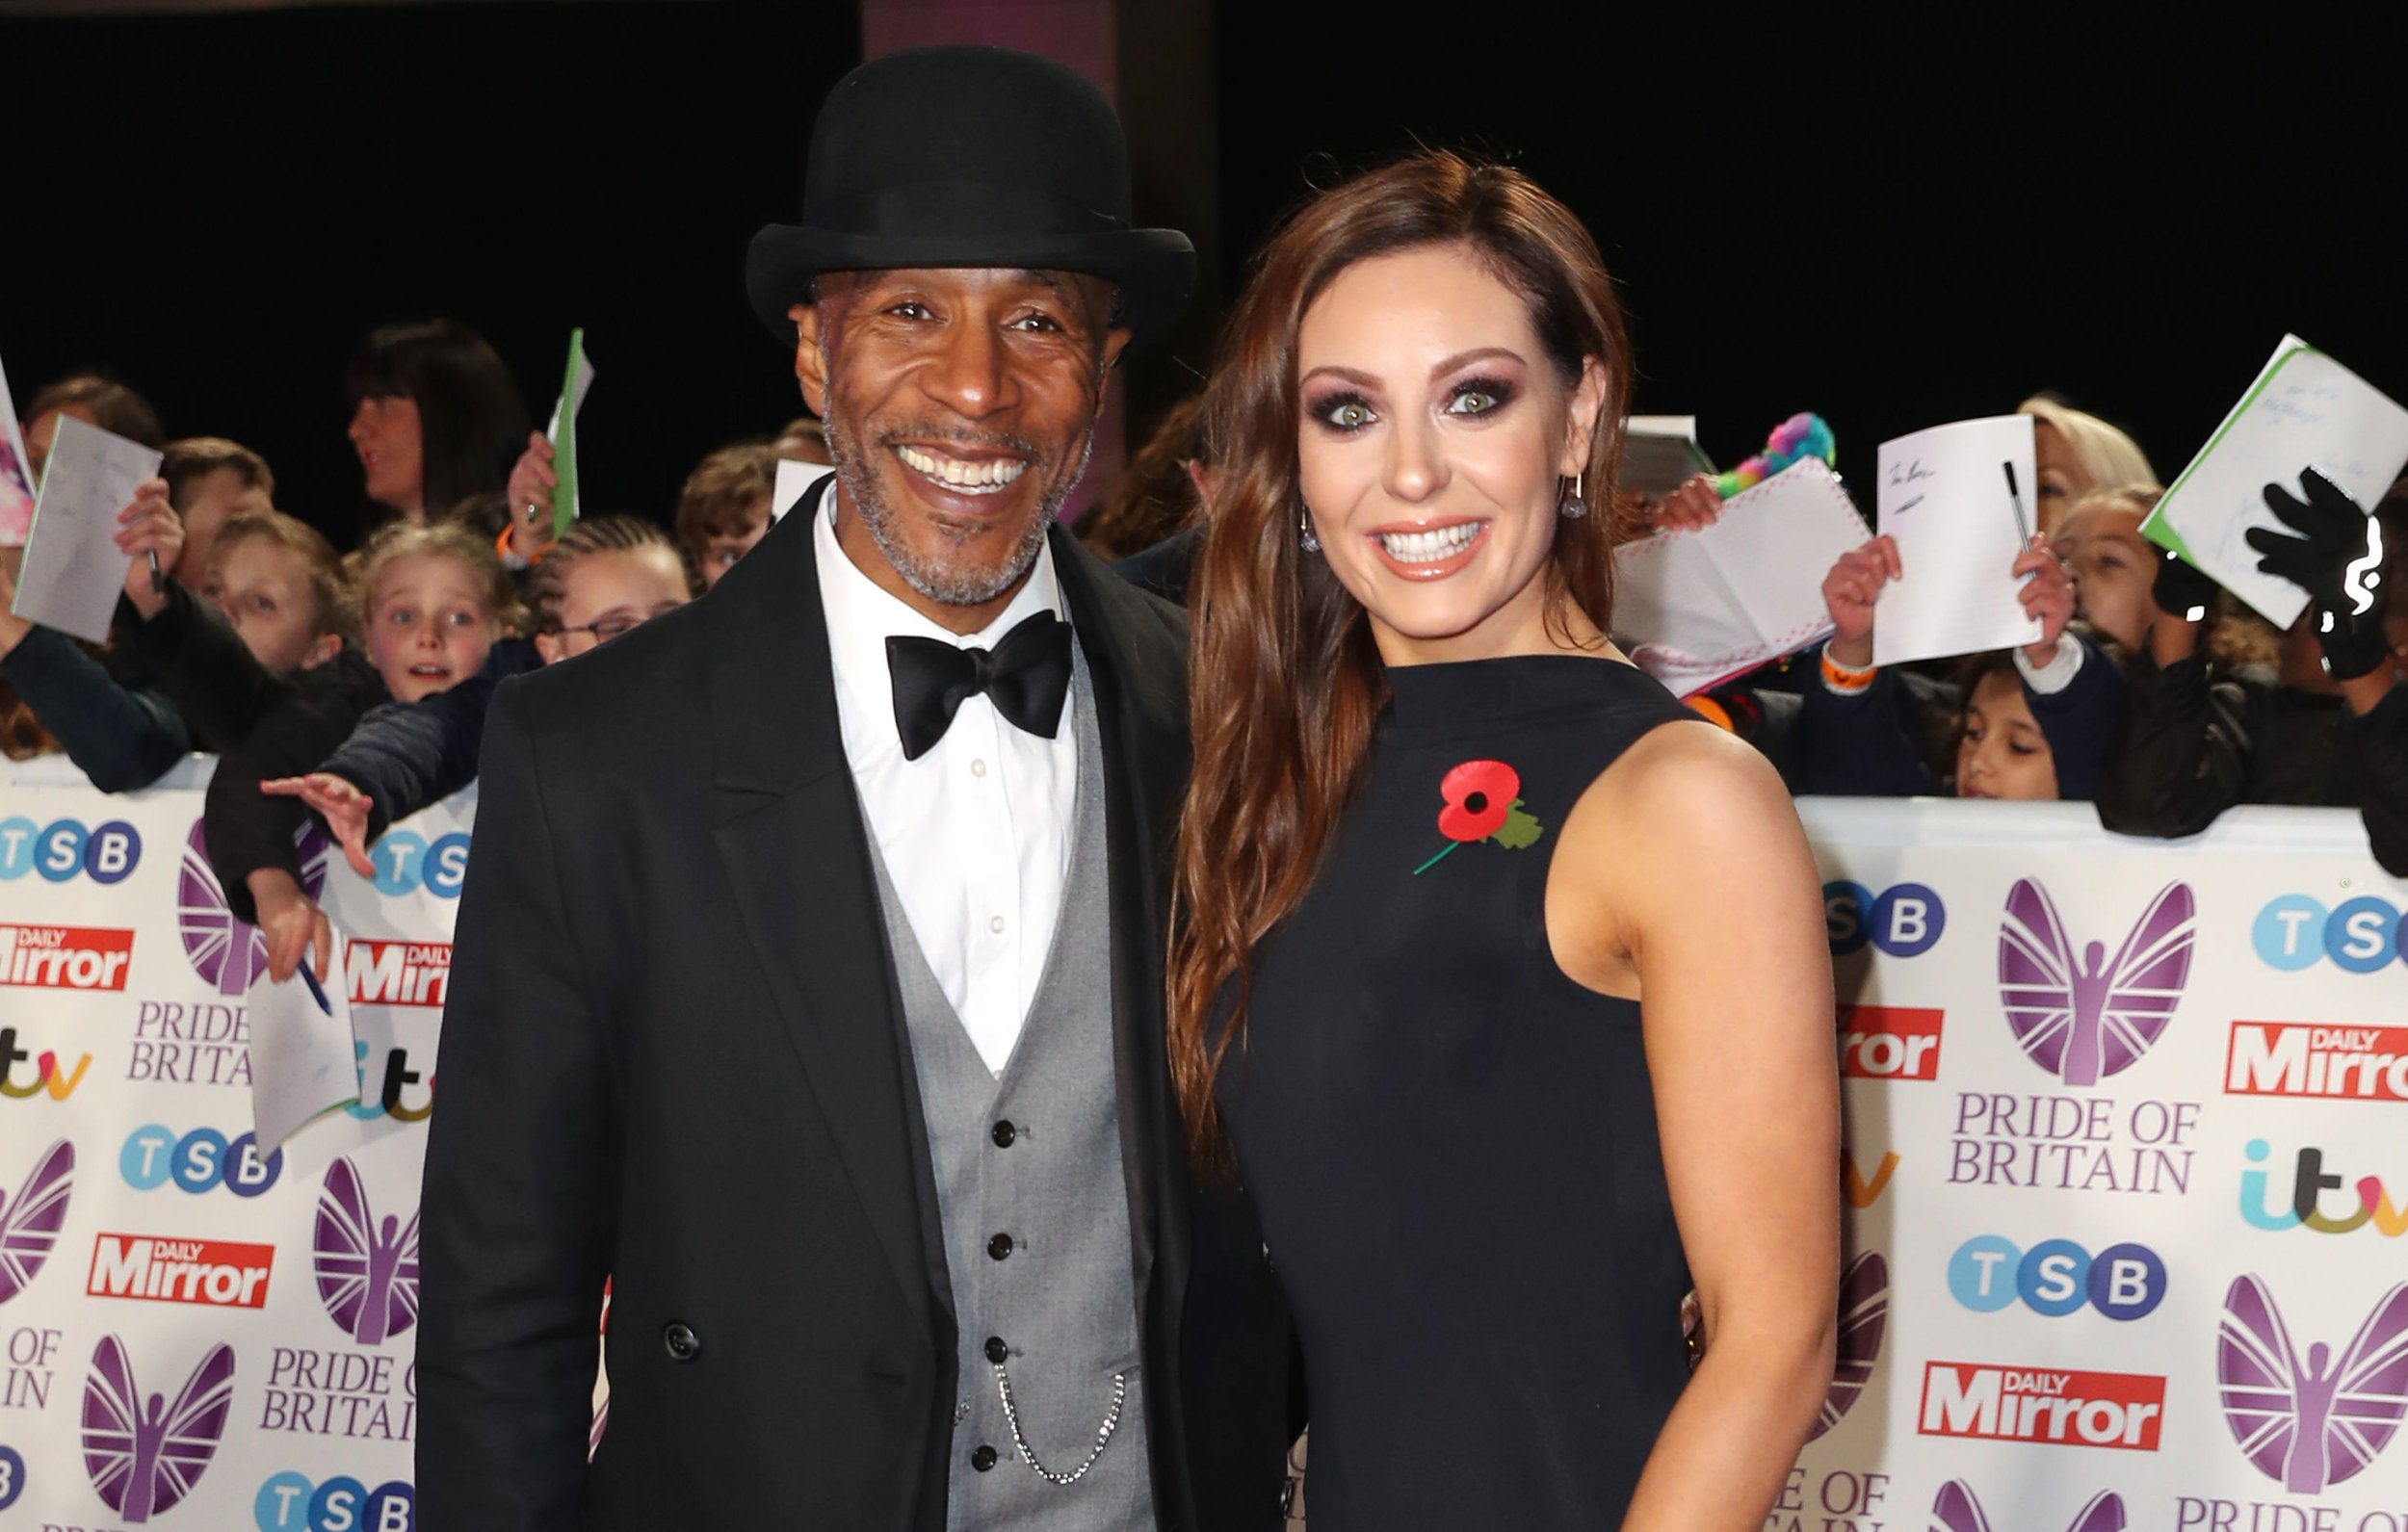 Danny John-Jules and Amy Dowden during the Pride Of Britain Awards 2018, in partnership with TSB, honouring the nation's unsung heroes and recognising the amazing achievements of ordinary people, held at the Grosvenor House Hotel, London. PRESS ASSOCIATION PHOTO. Picture date: Monday October 29, 2018. See PA story SHOWBIZ Pride. Photo credit should read: Steve Parsons/PA Wire